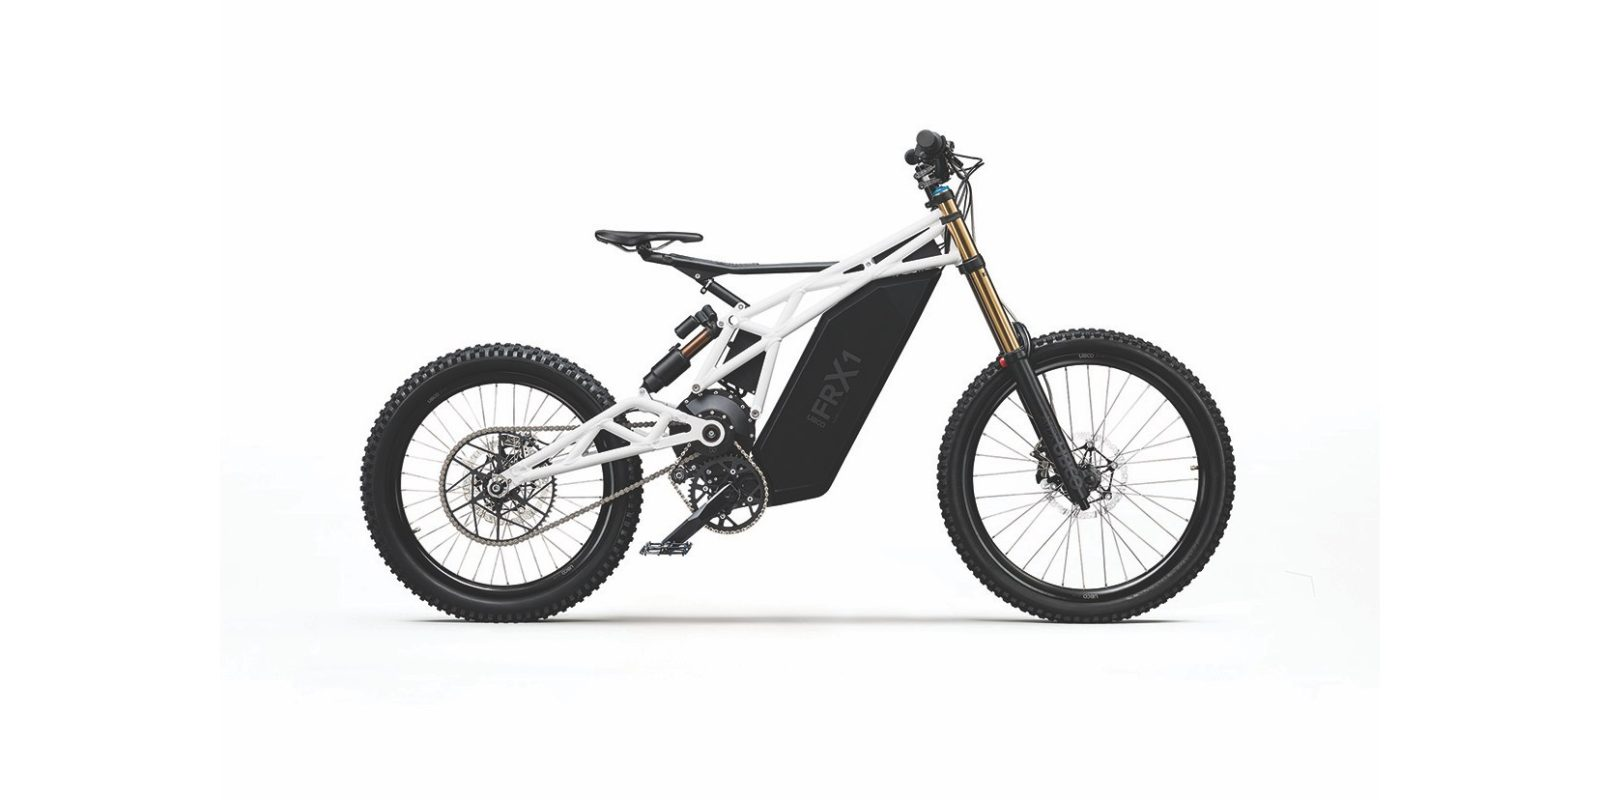 UBCO reveals new 50 mph (80 km/h) electric trail bike with pedals